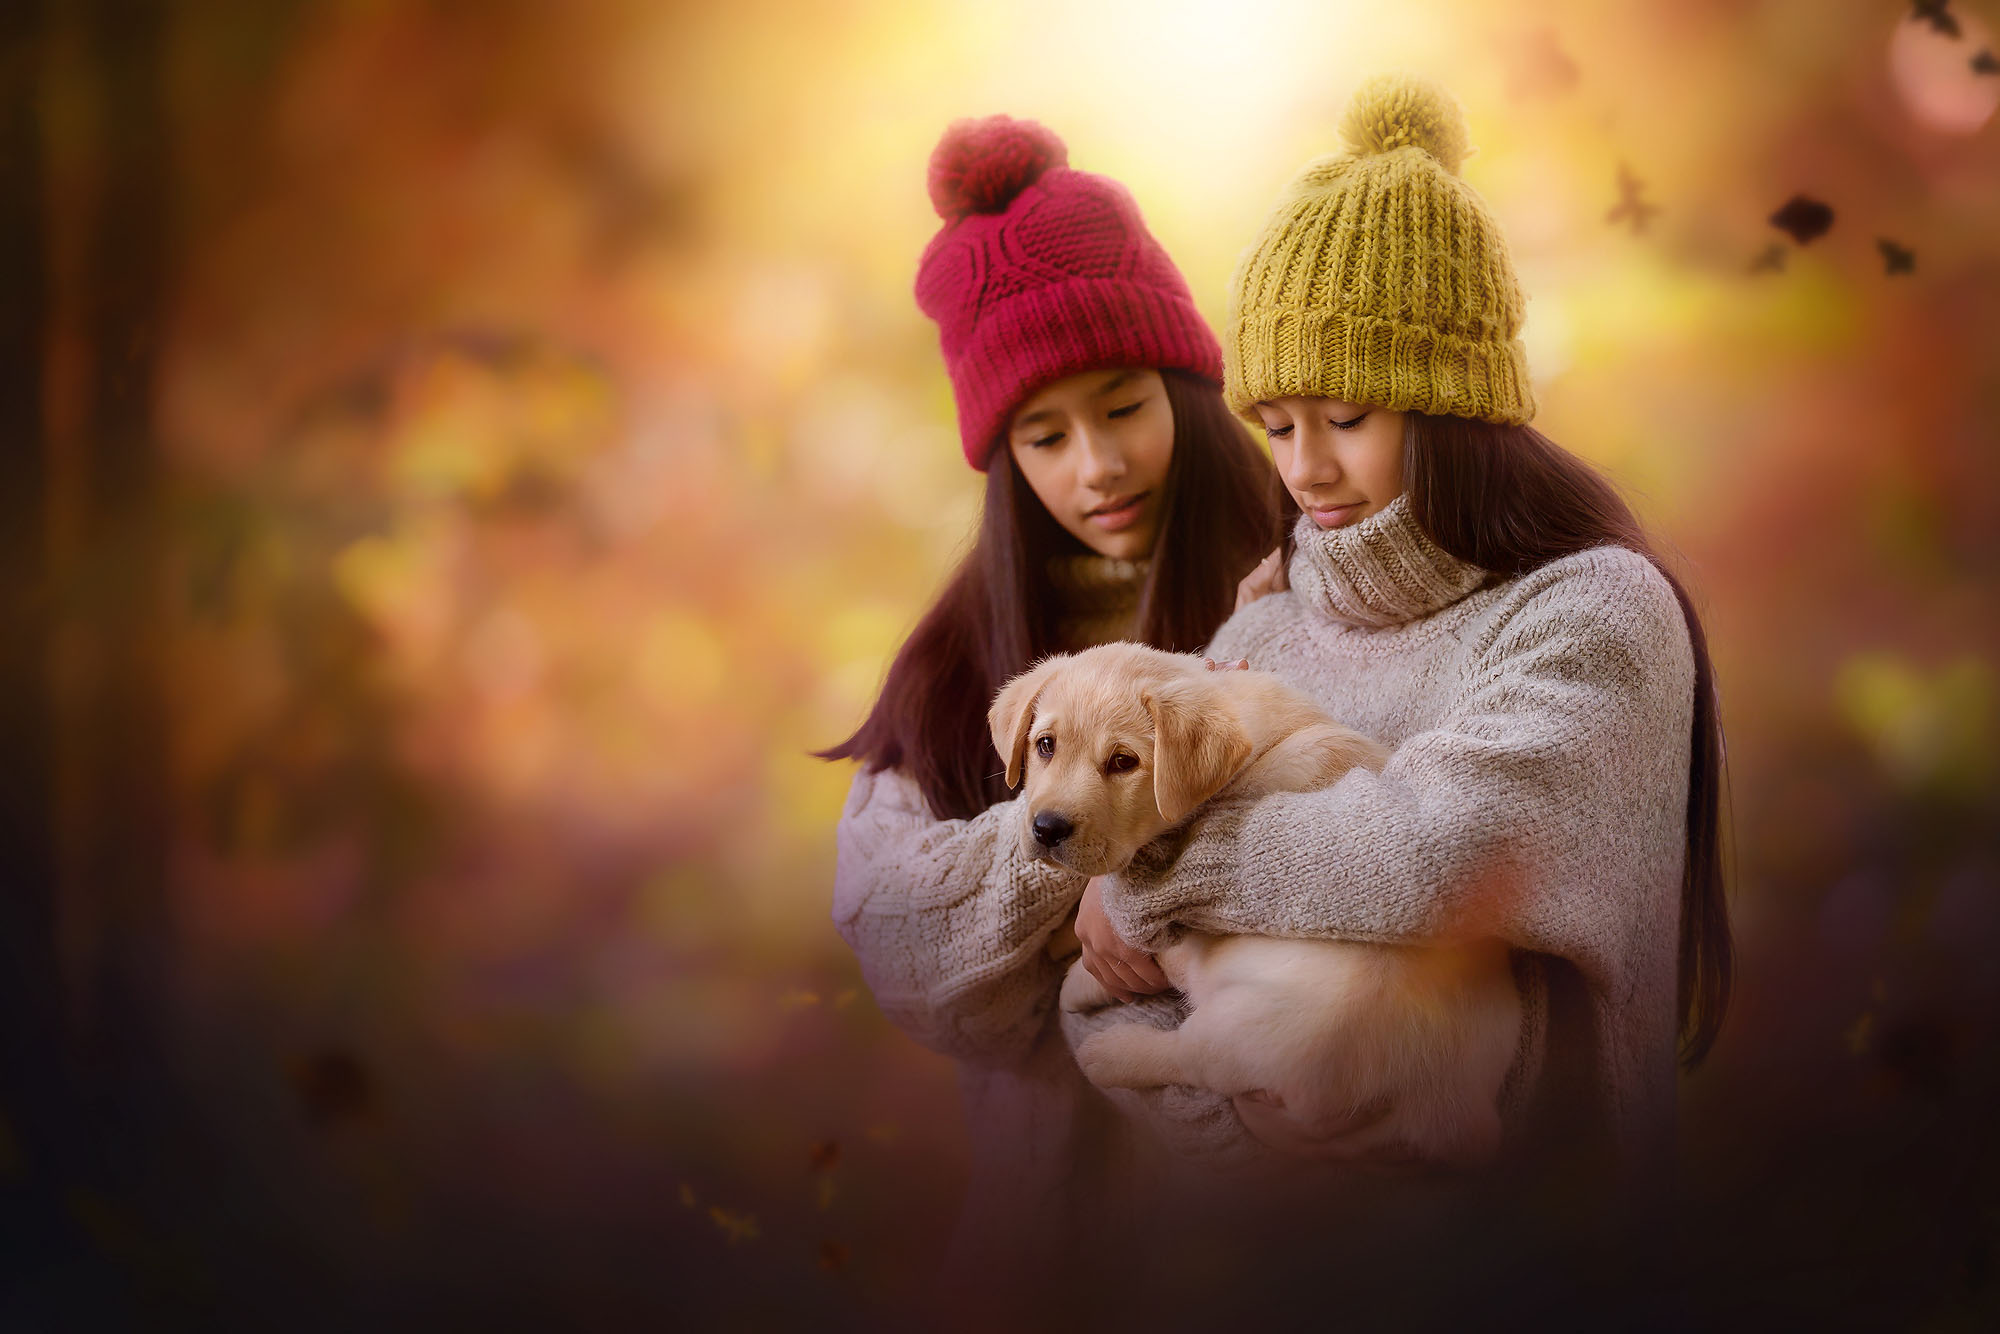 Canon 5d mark III portrait of two gorgeous asian girls holding a puppy in an enchanted autumn forest by Willie kers copy